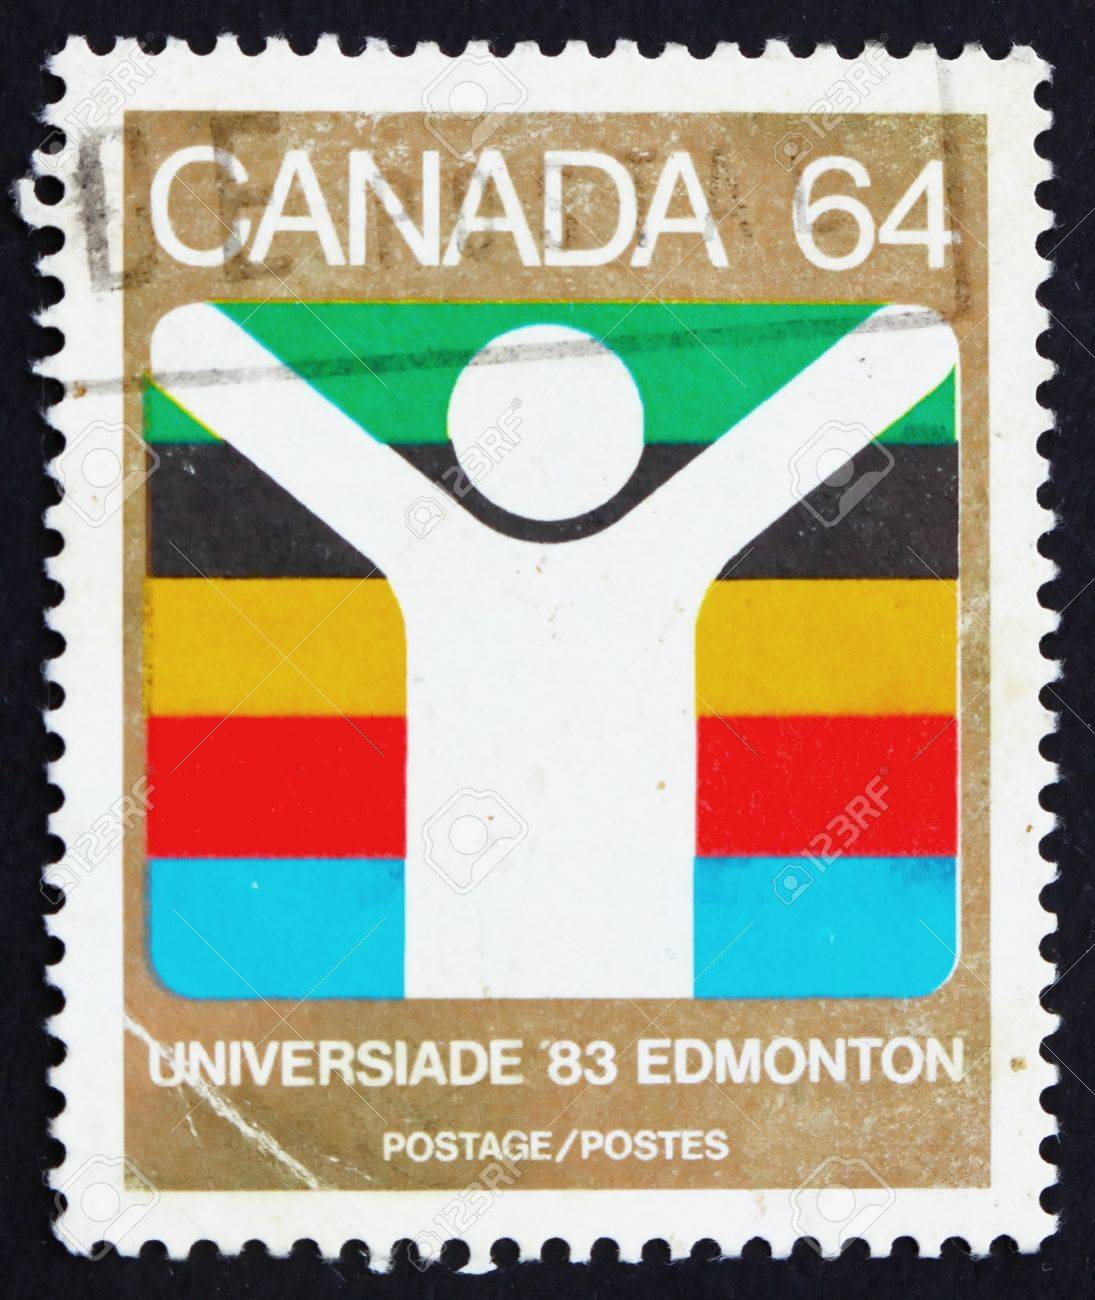 CANADA - CIRCA 1983: a stamp printed in the Canada shows World University Games, Edmonton, circa 1983 Stock Photo - 15942840